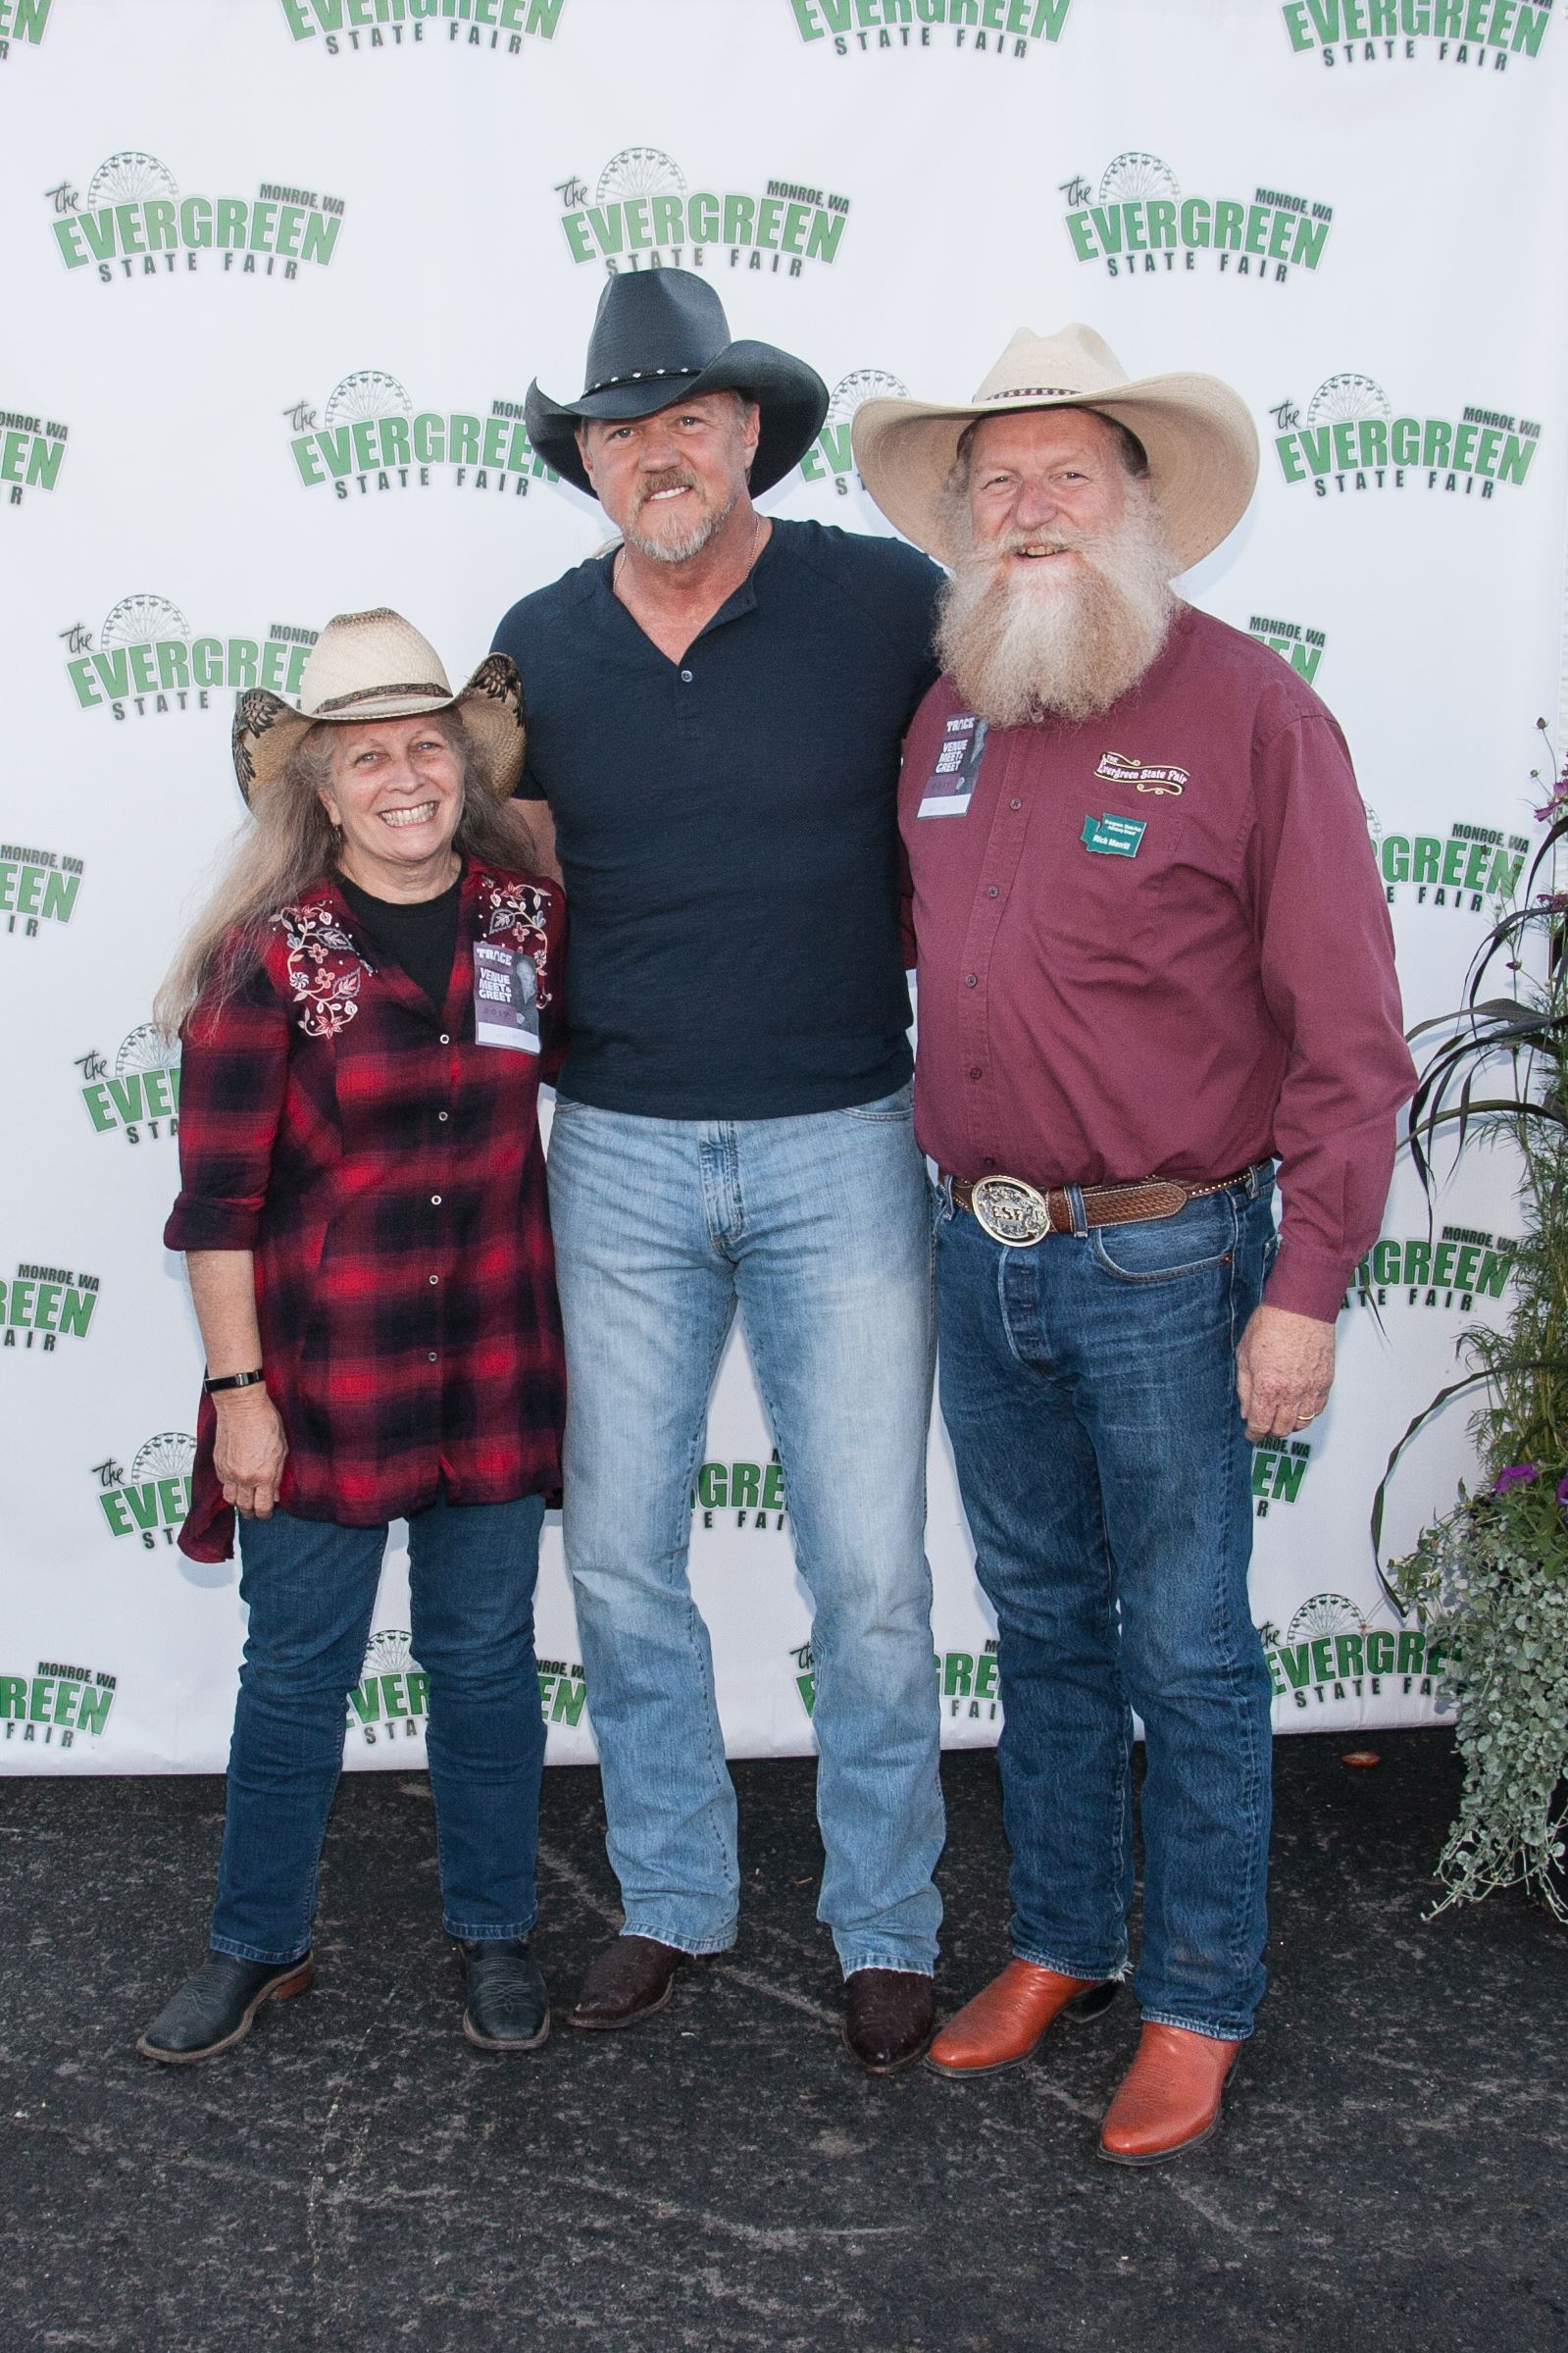 Evergreen state fairgrounds wa official website traceadkins19 kristyandbryce Choice Image